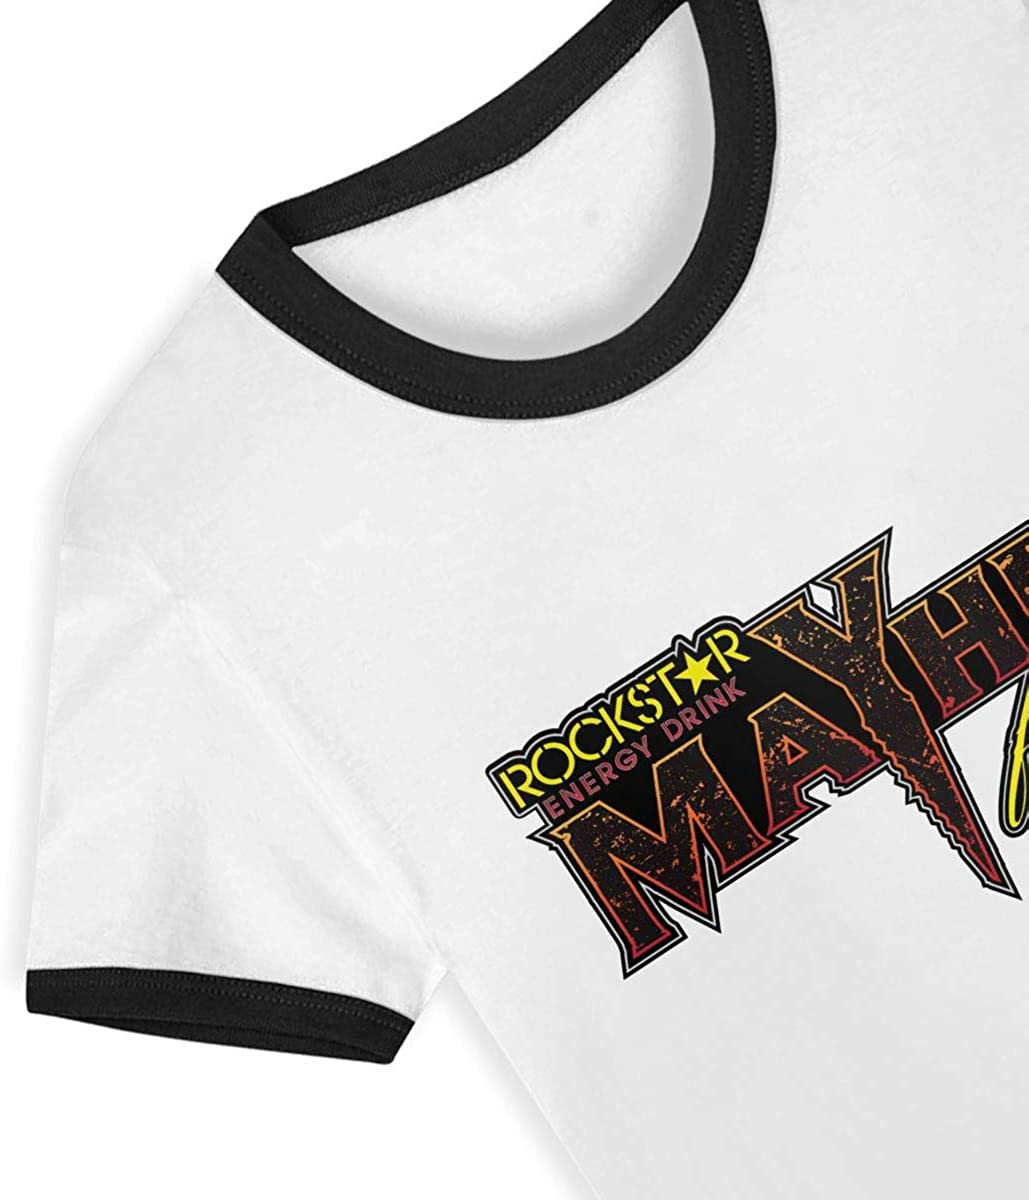 Rockstar Energy-Drink Childrens Short Sleeve T-Shirt Casual Classic Cotton Shirt with Round Collar Black